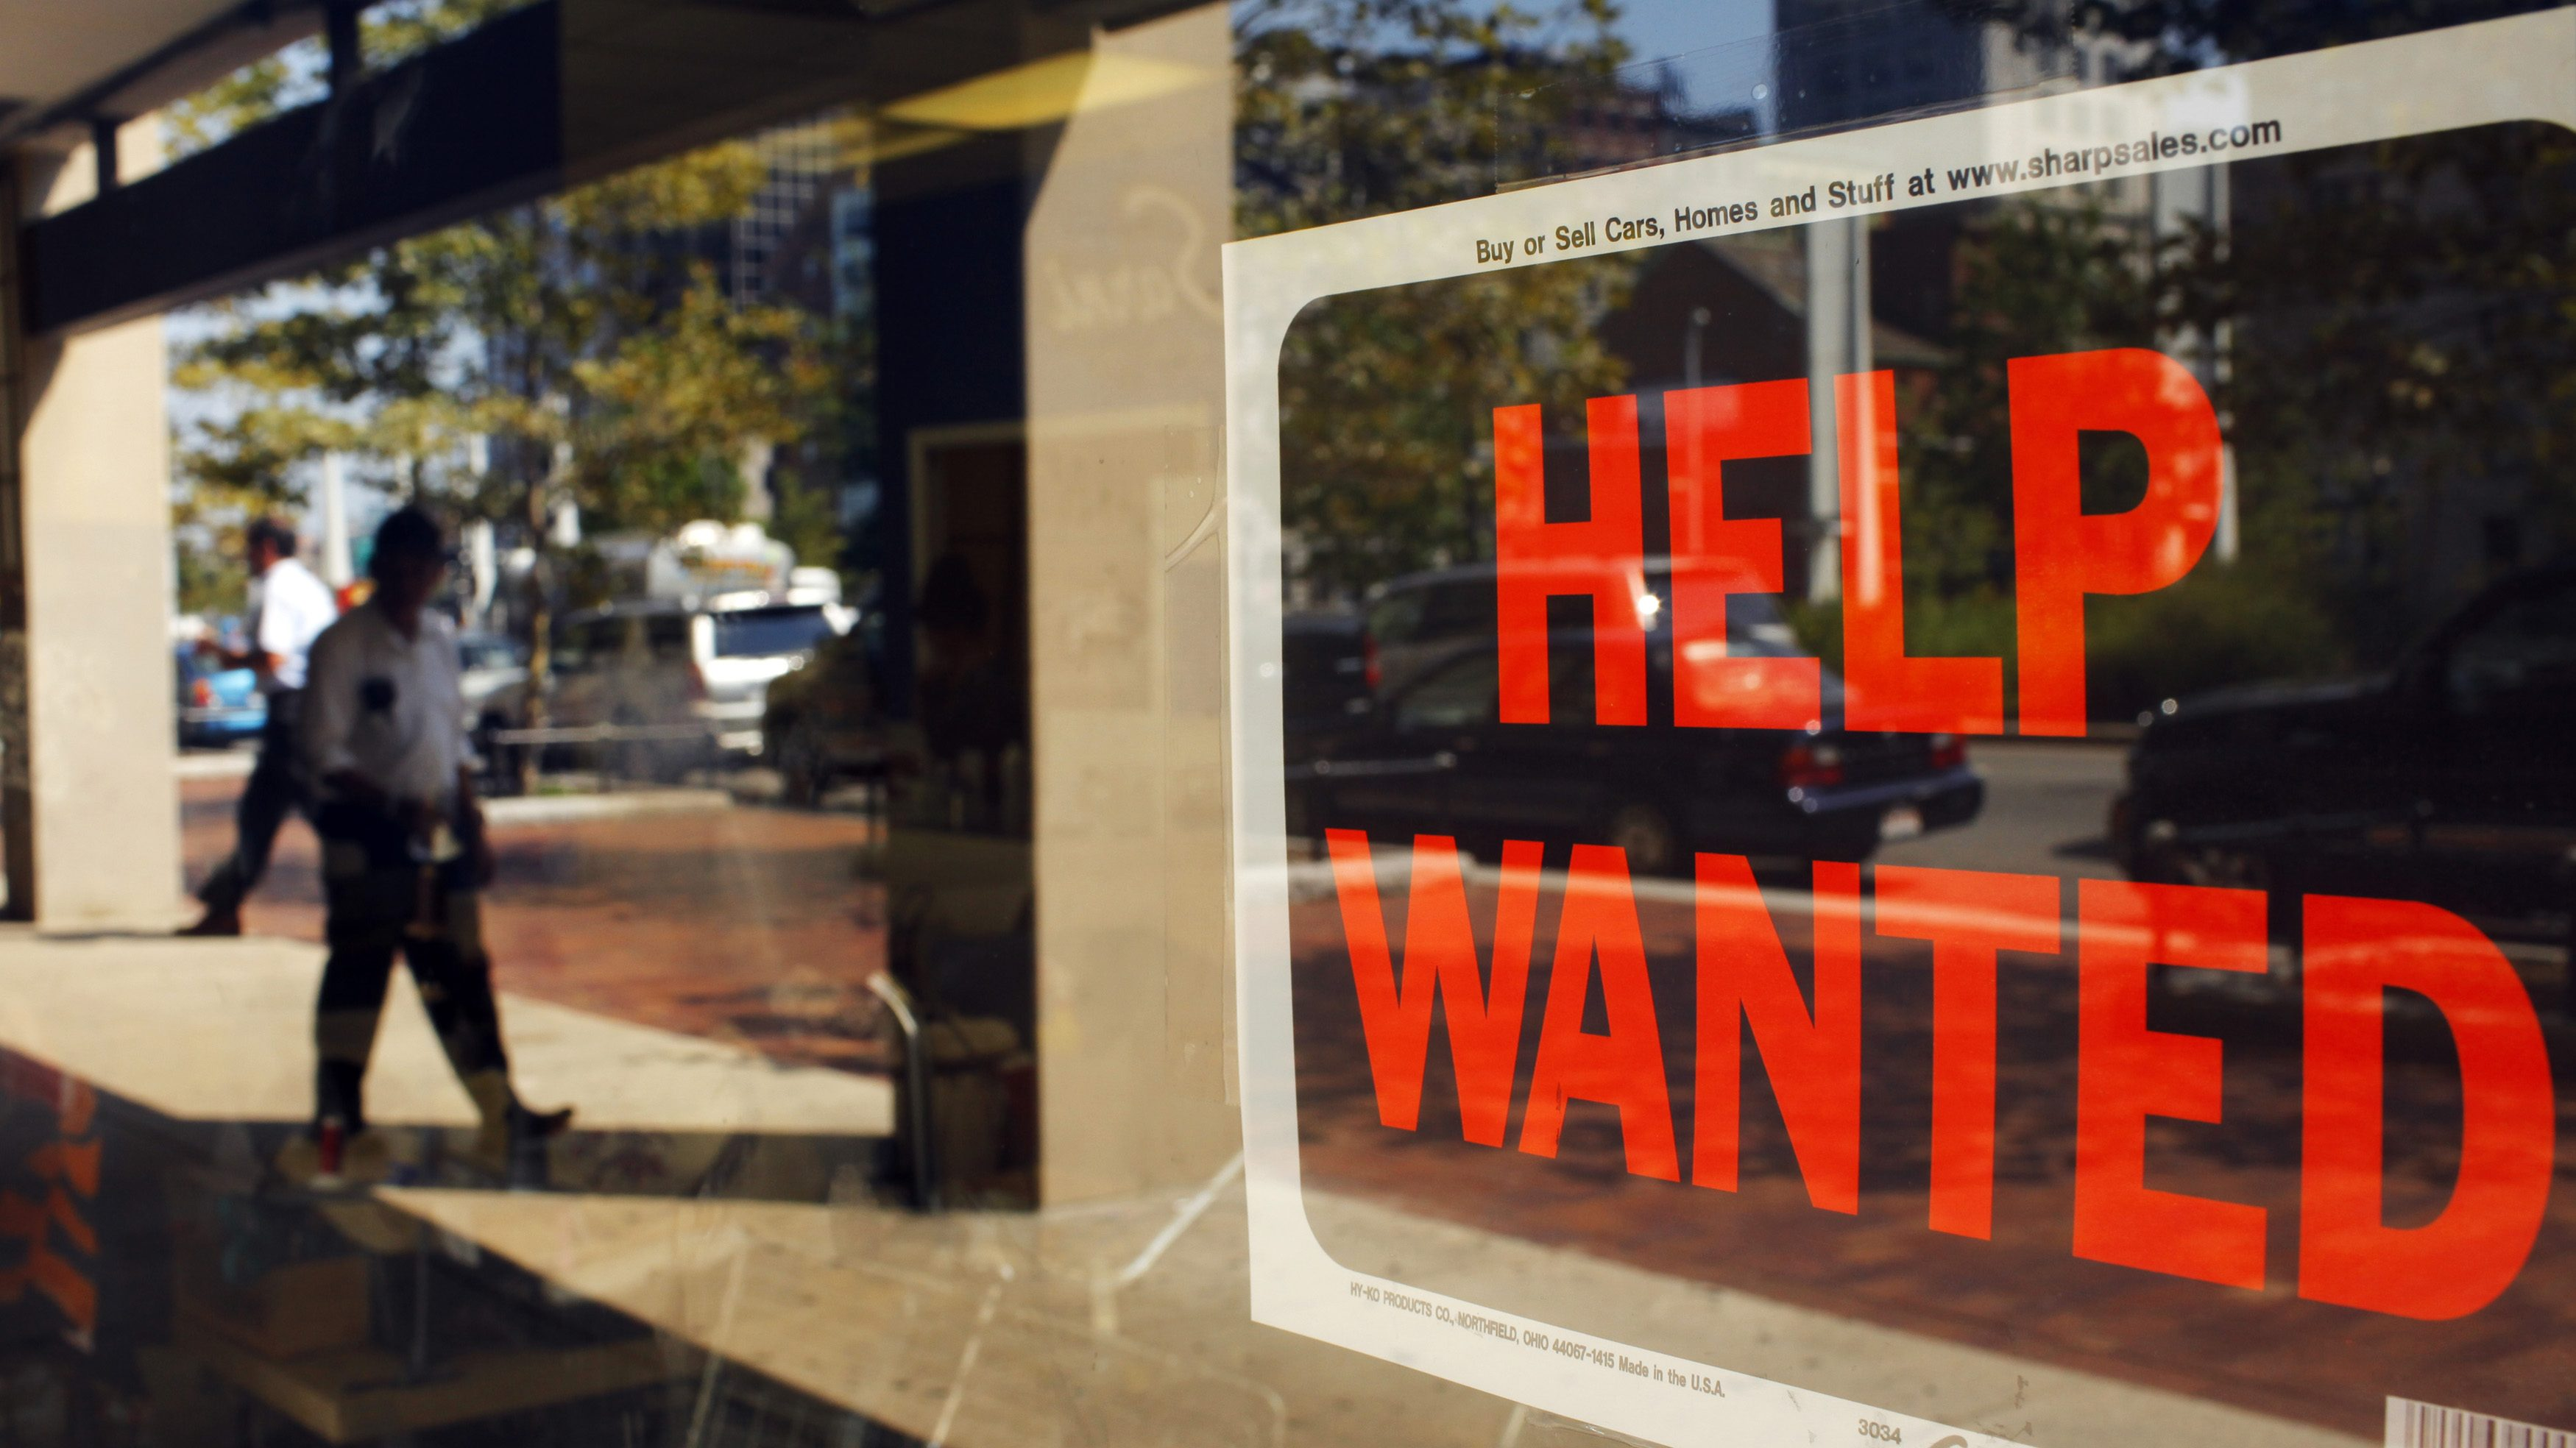 """A """"Help Wanted"""" sign in the window advertises a job opening at a dry cleaners in Boston"""